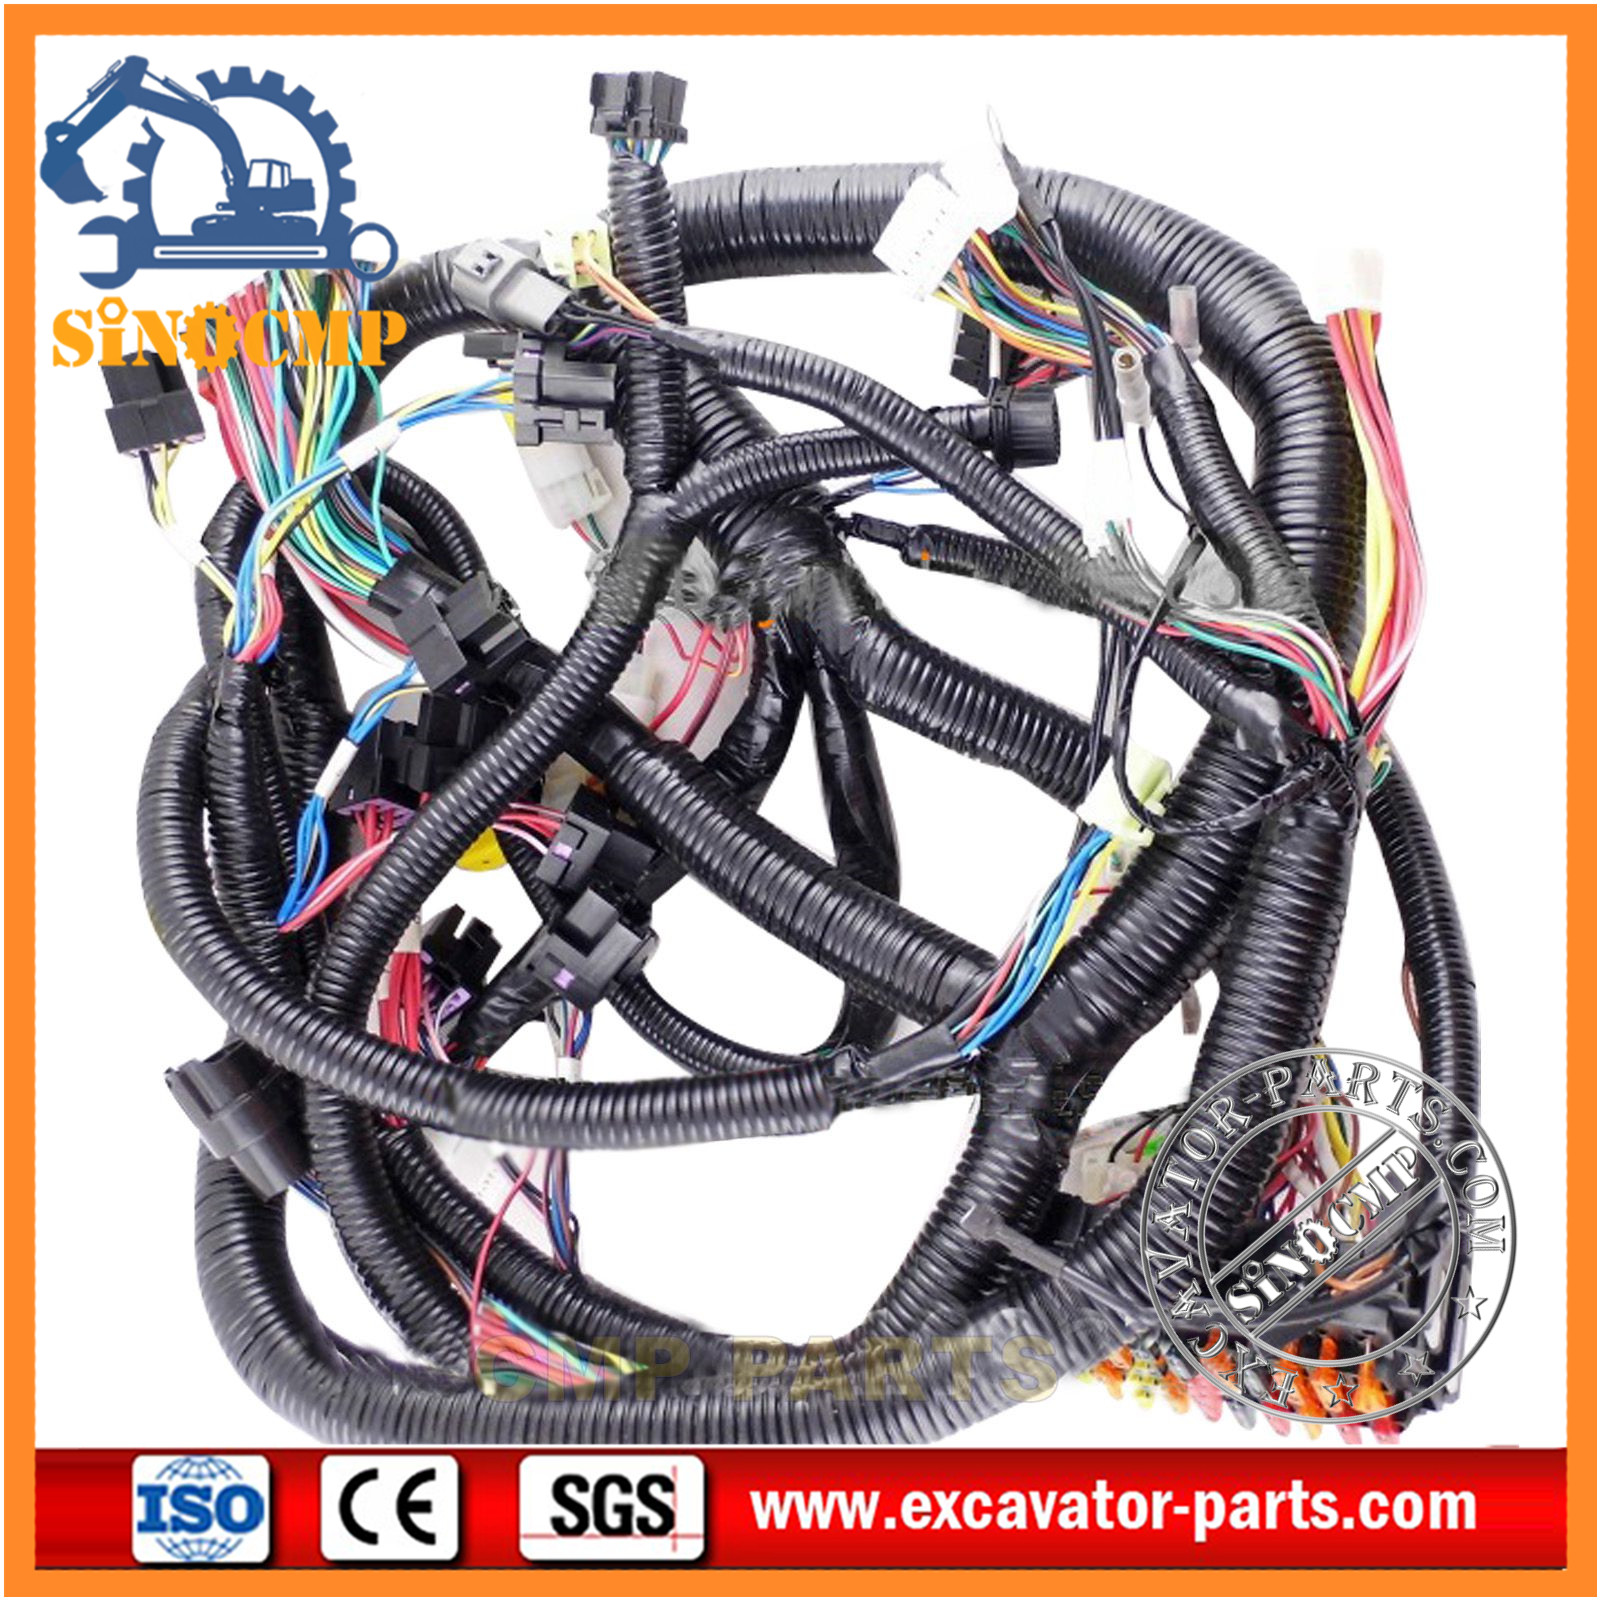 EX120 2 Hitachi Excavator Inner Cabin Wiring Harness 0001044 2 ebay 1 hitachi ex200 3 wiring harness 0001835 0001847 hitachi excavator cucv cabin wiring harness at gsmx.co